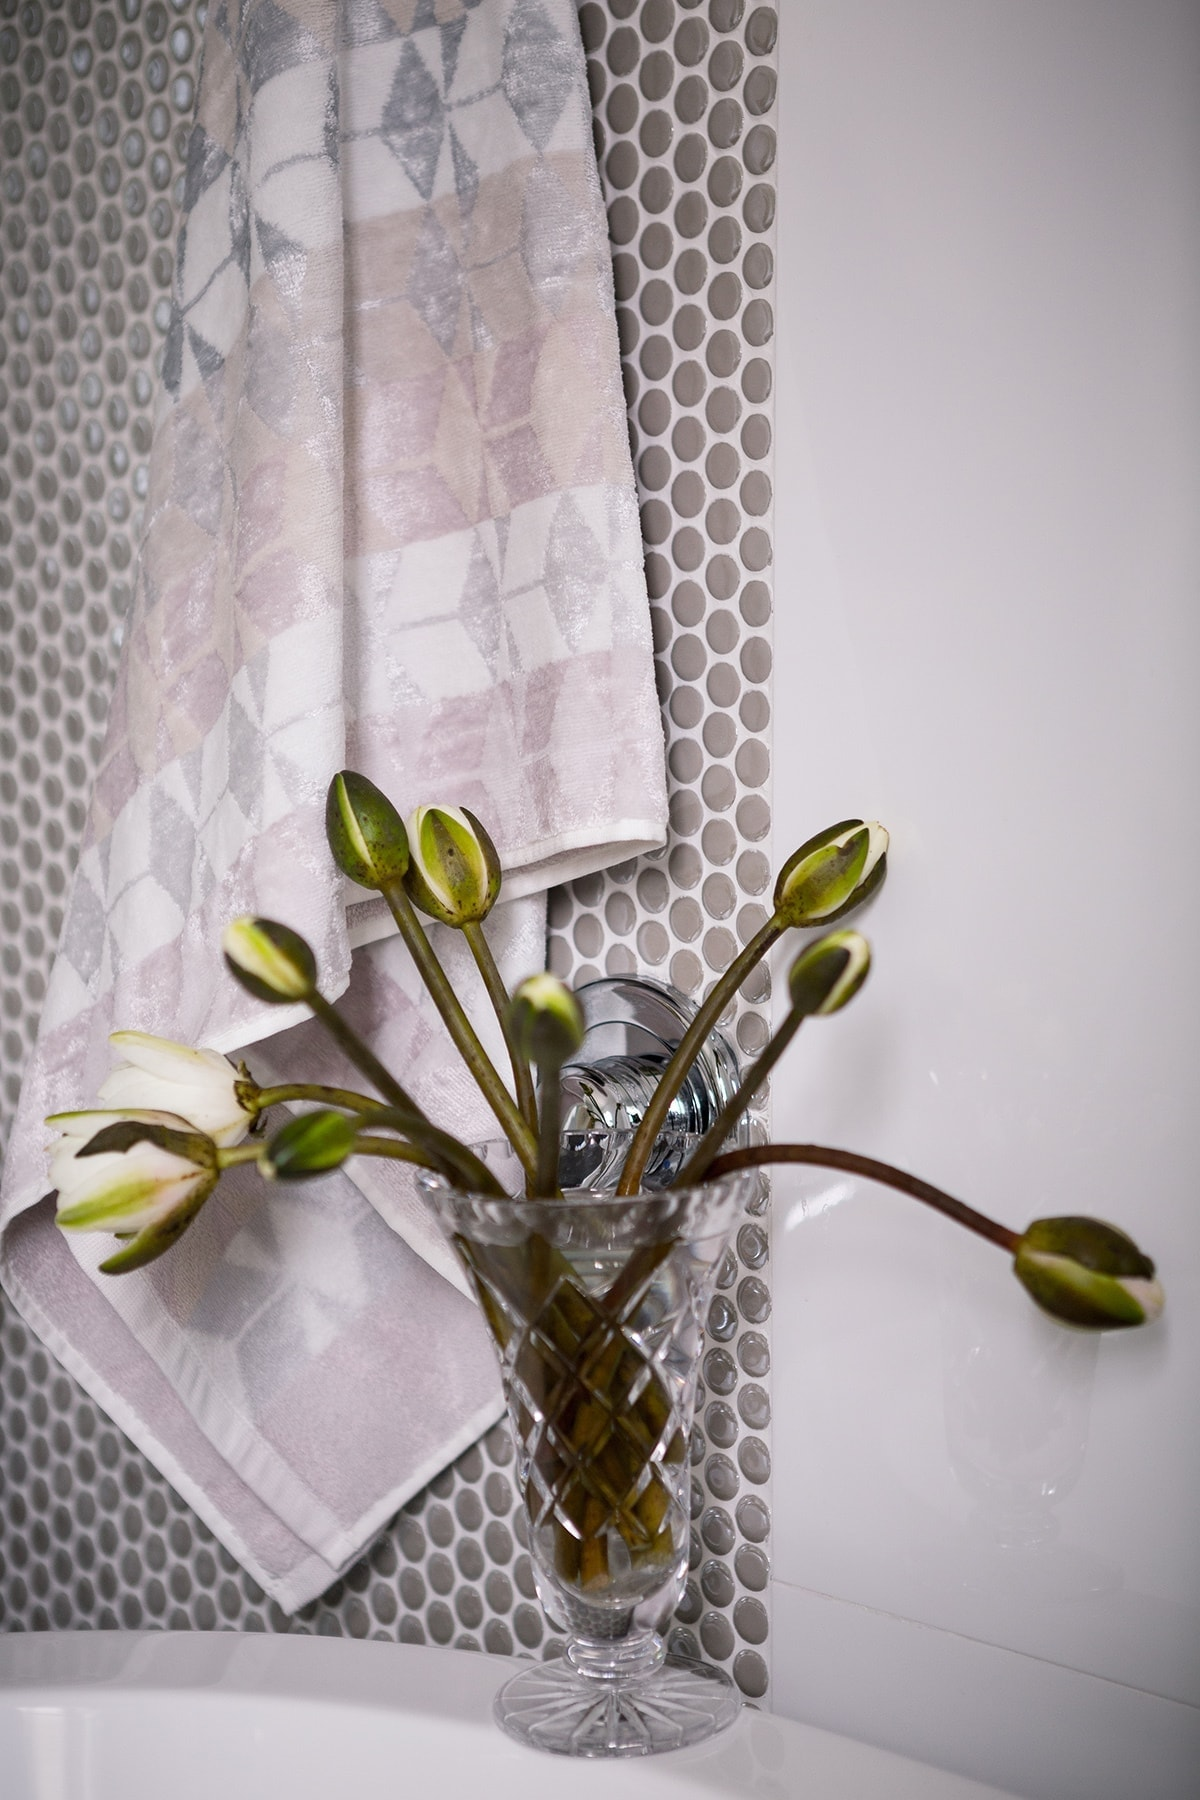 closed flower buds in ornate glass vase on top of freestanding bath